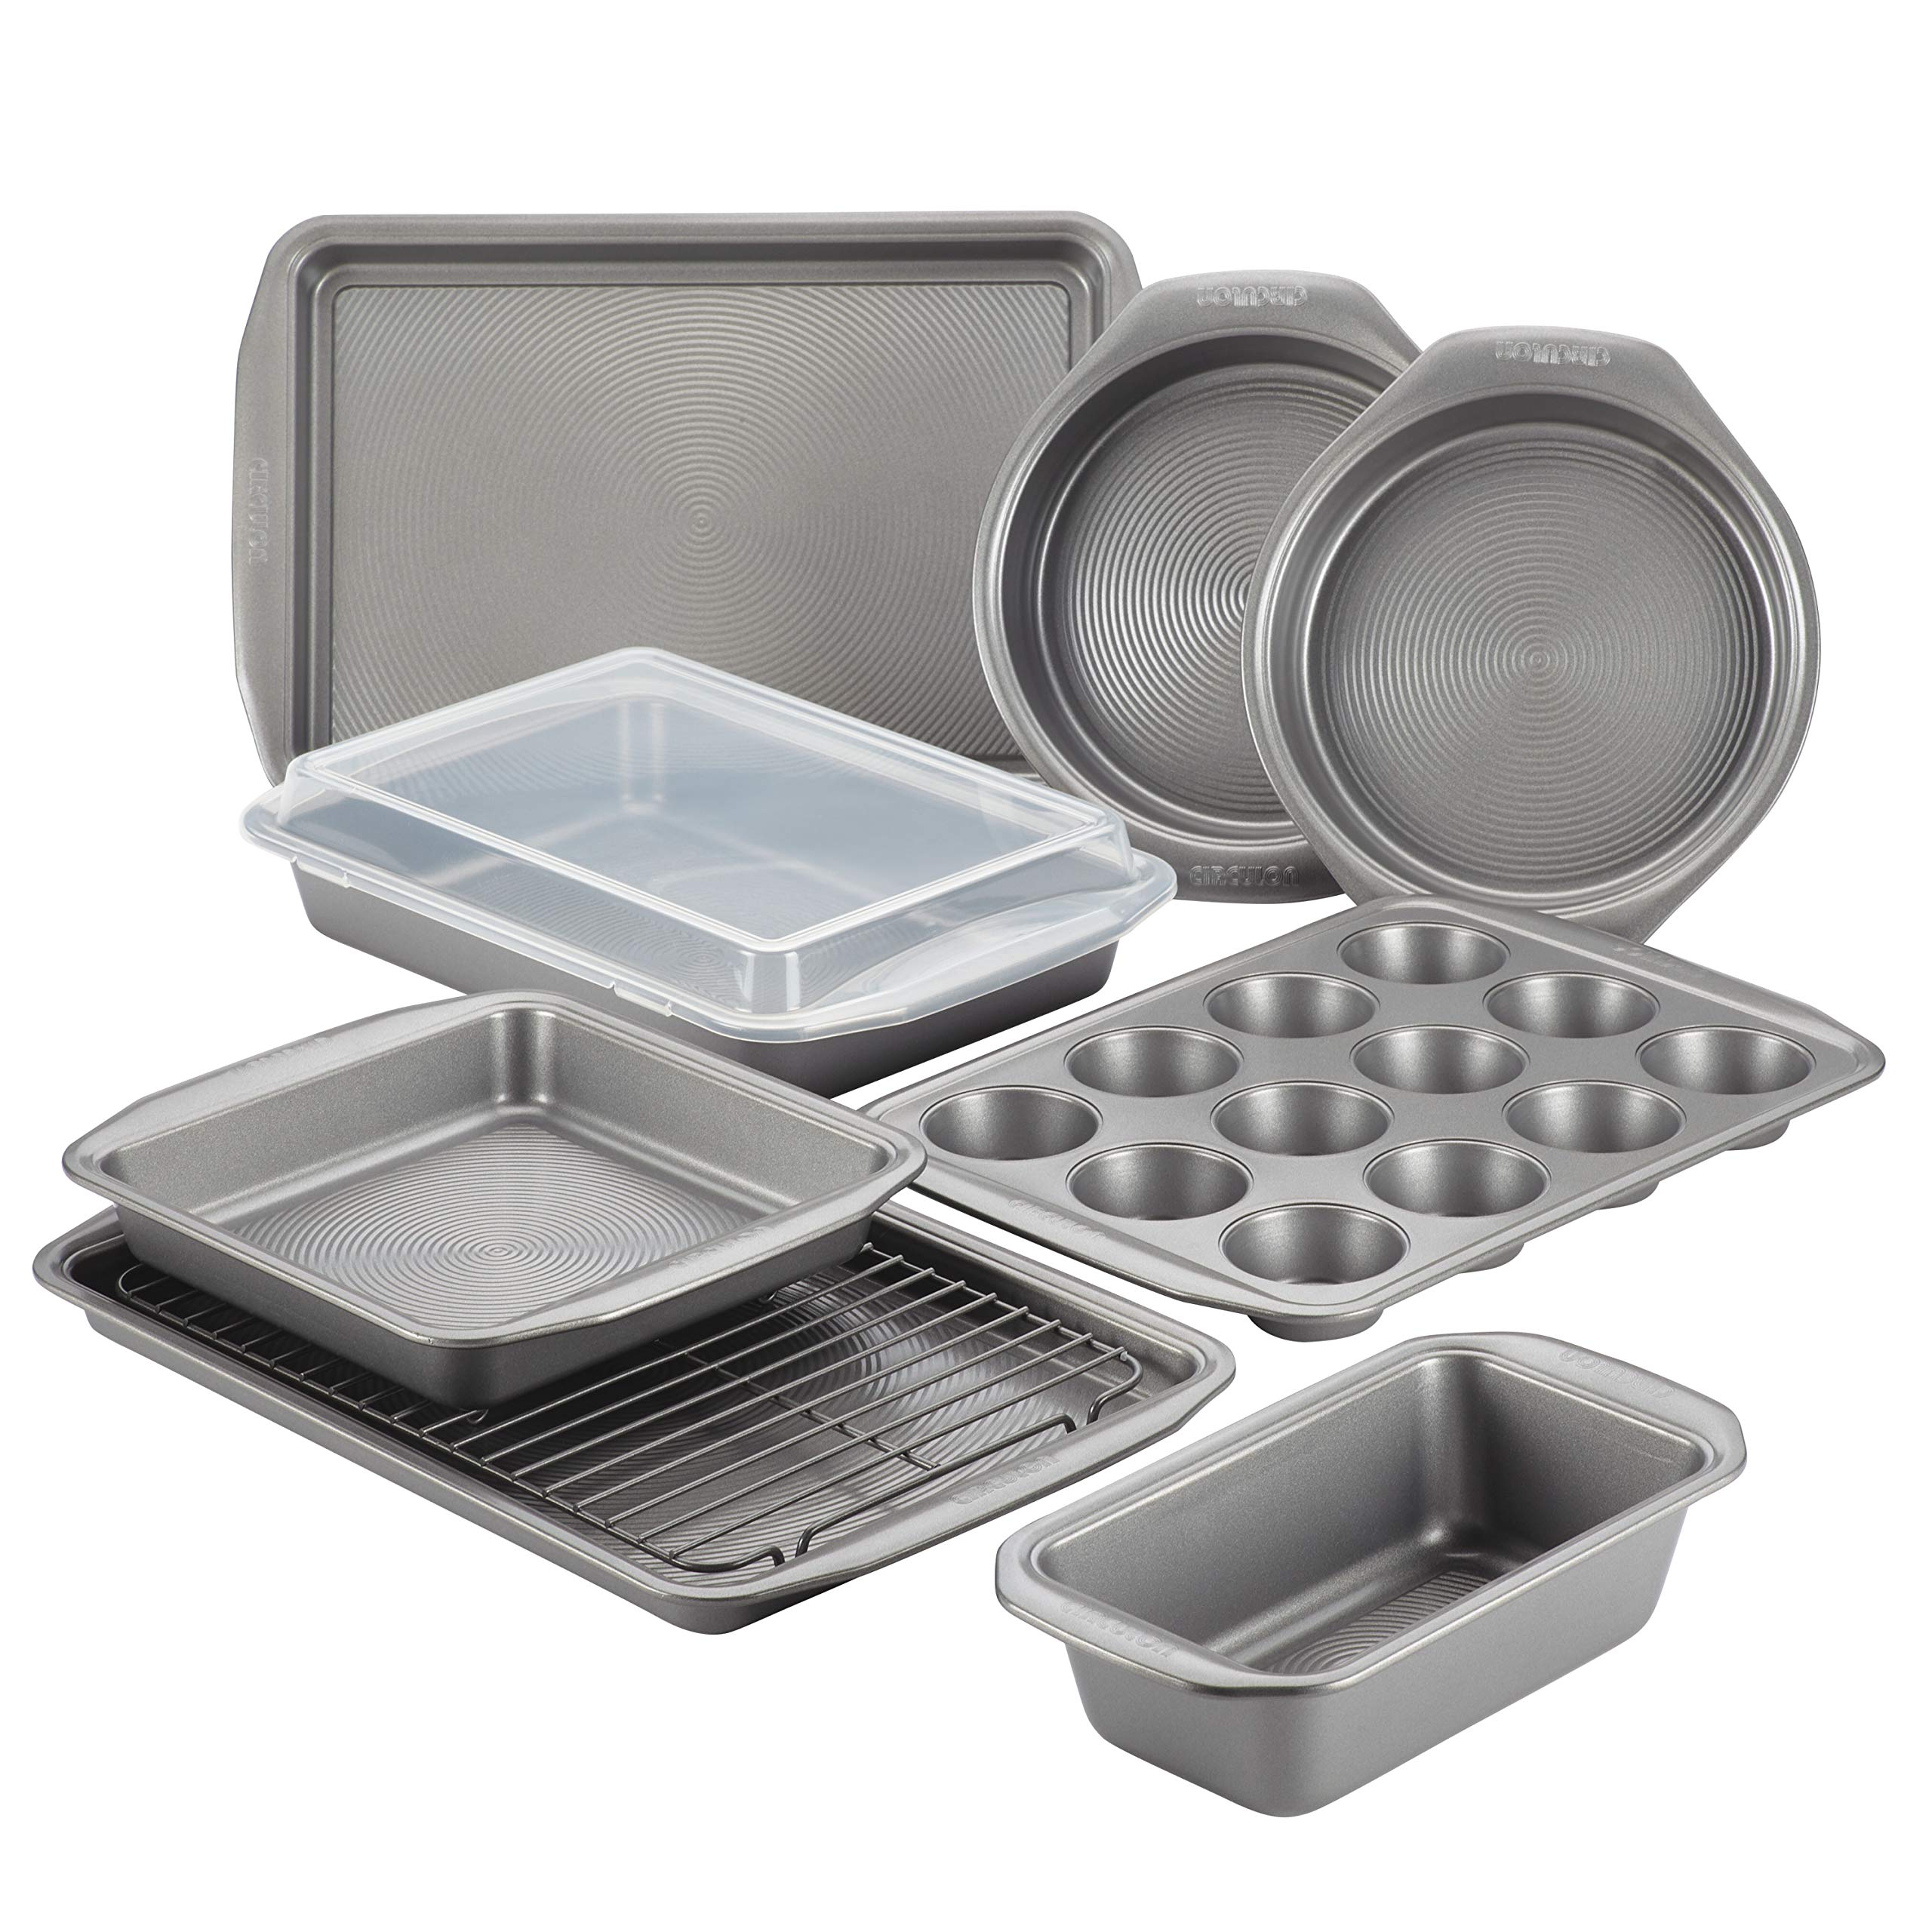 Circulon 47485 10-Piece Steel Bakeware Set, Gray